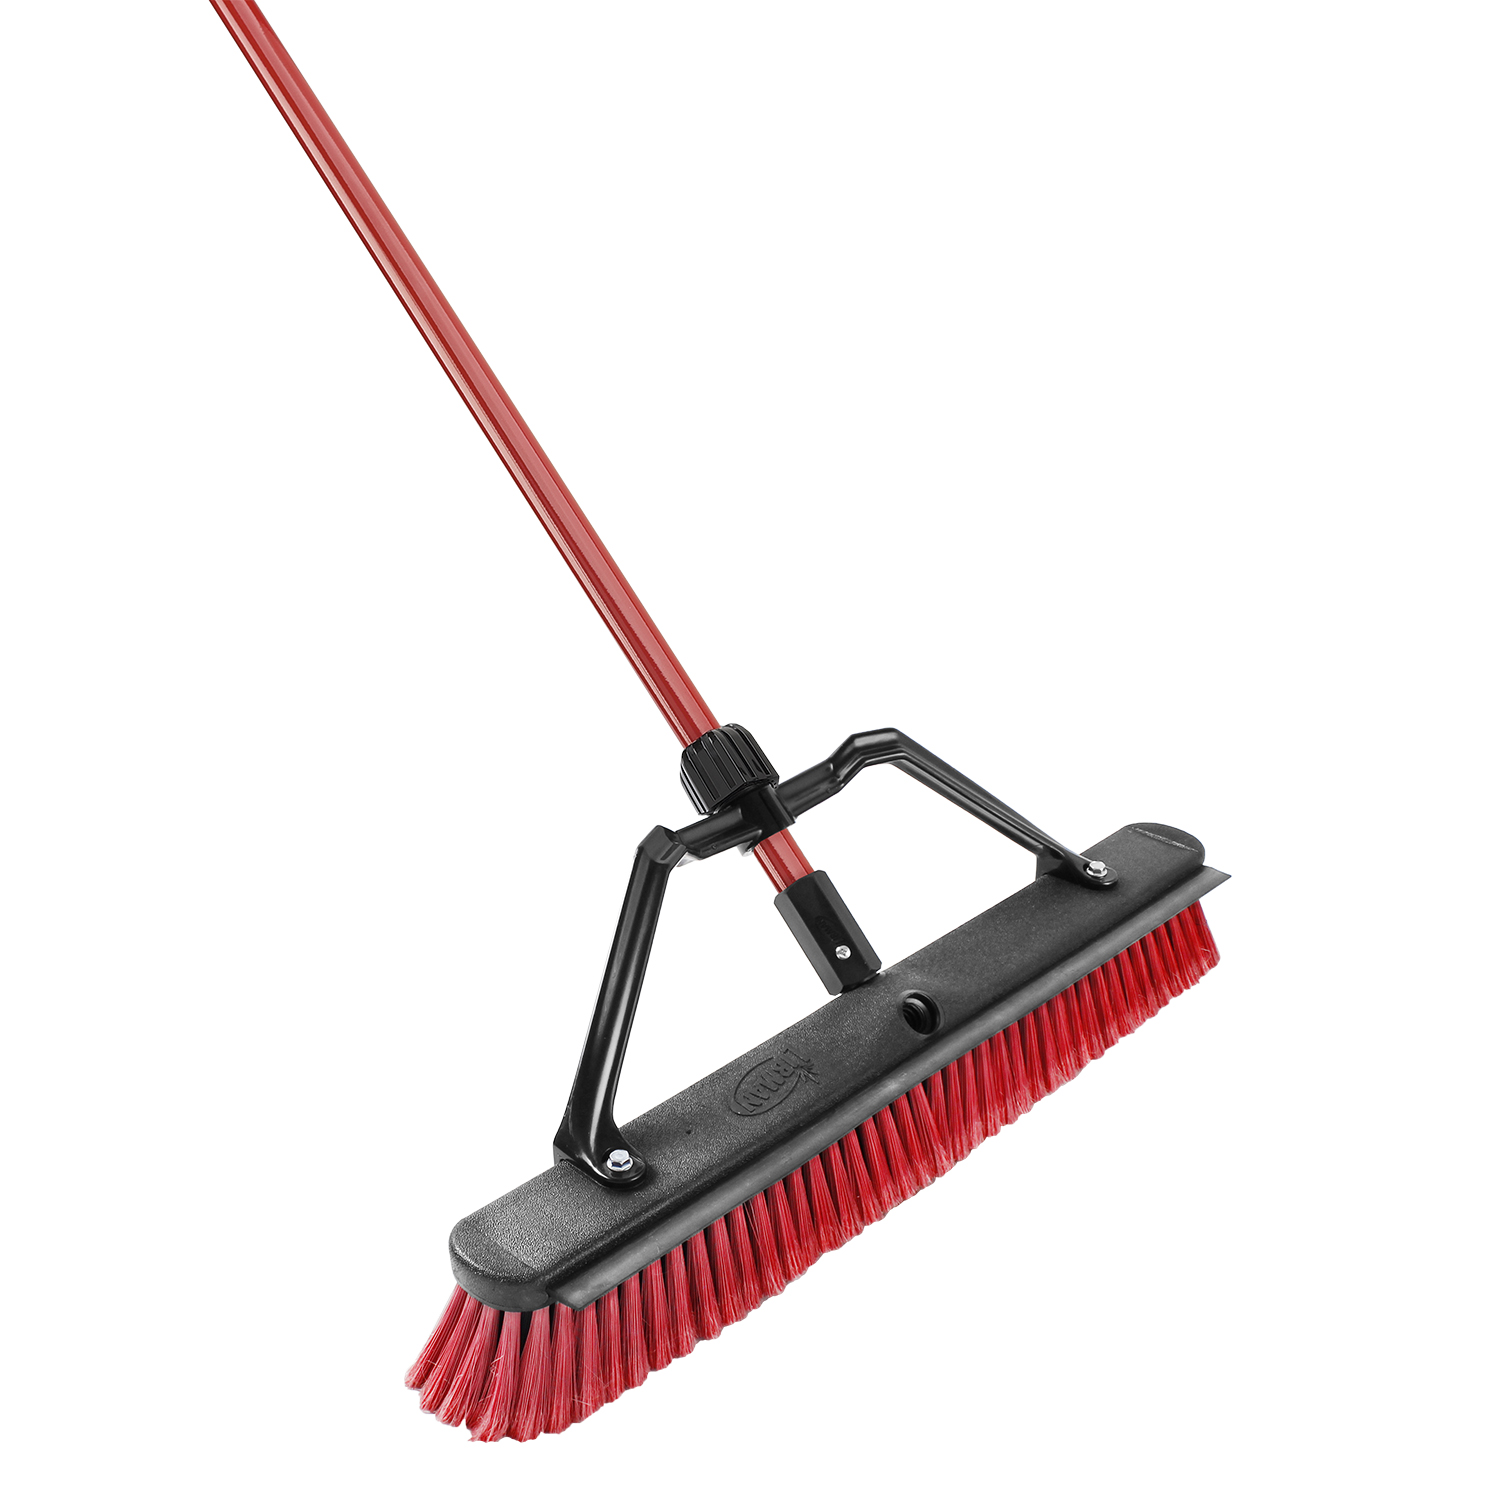 Libman 24 in. Push Broom With Squeegee, Red & Black